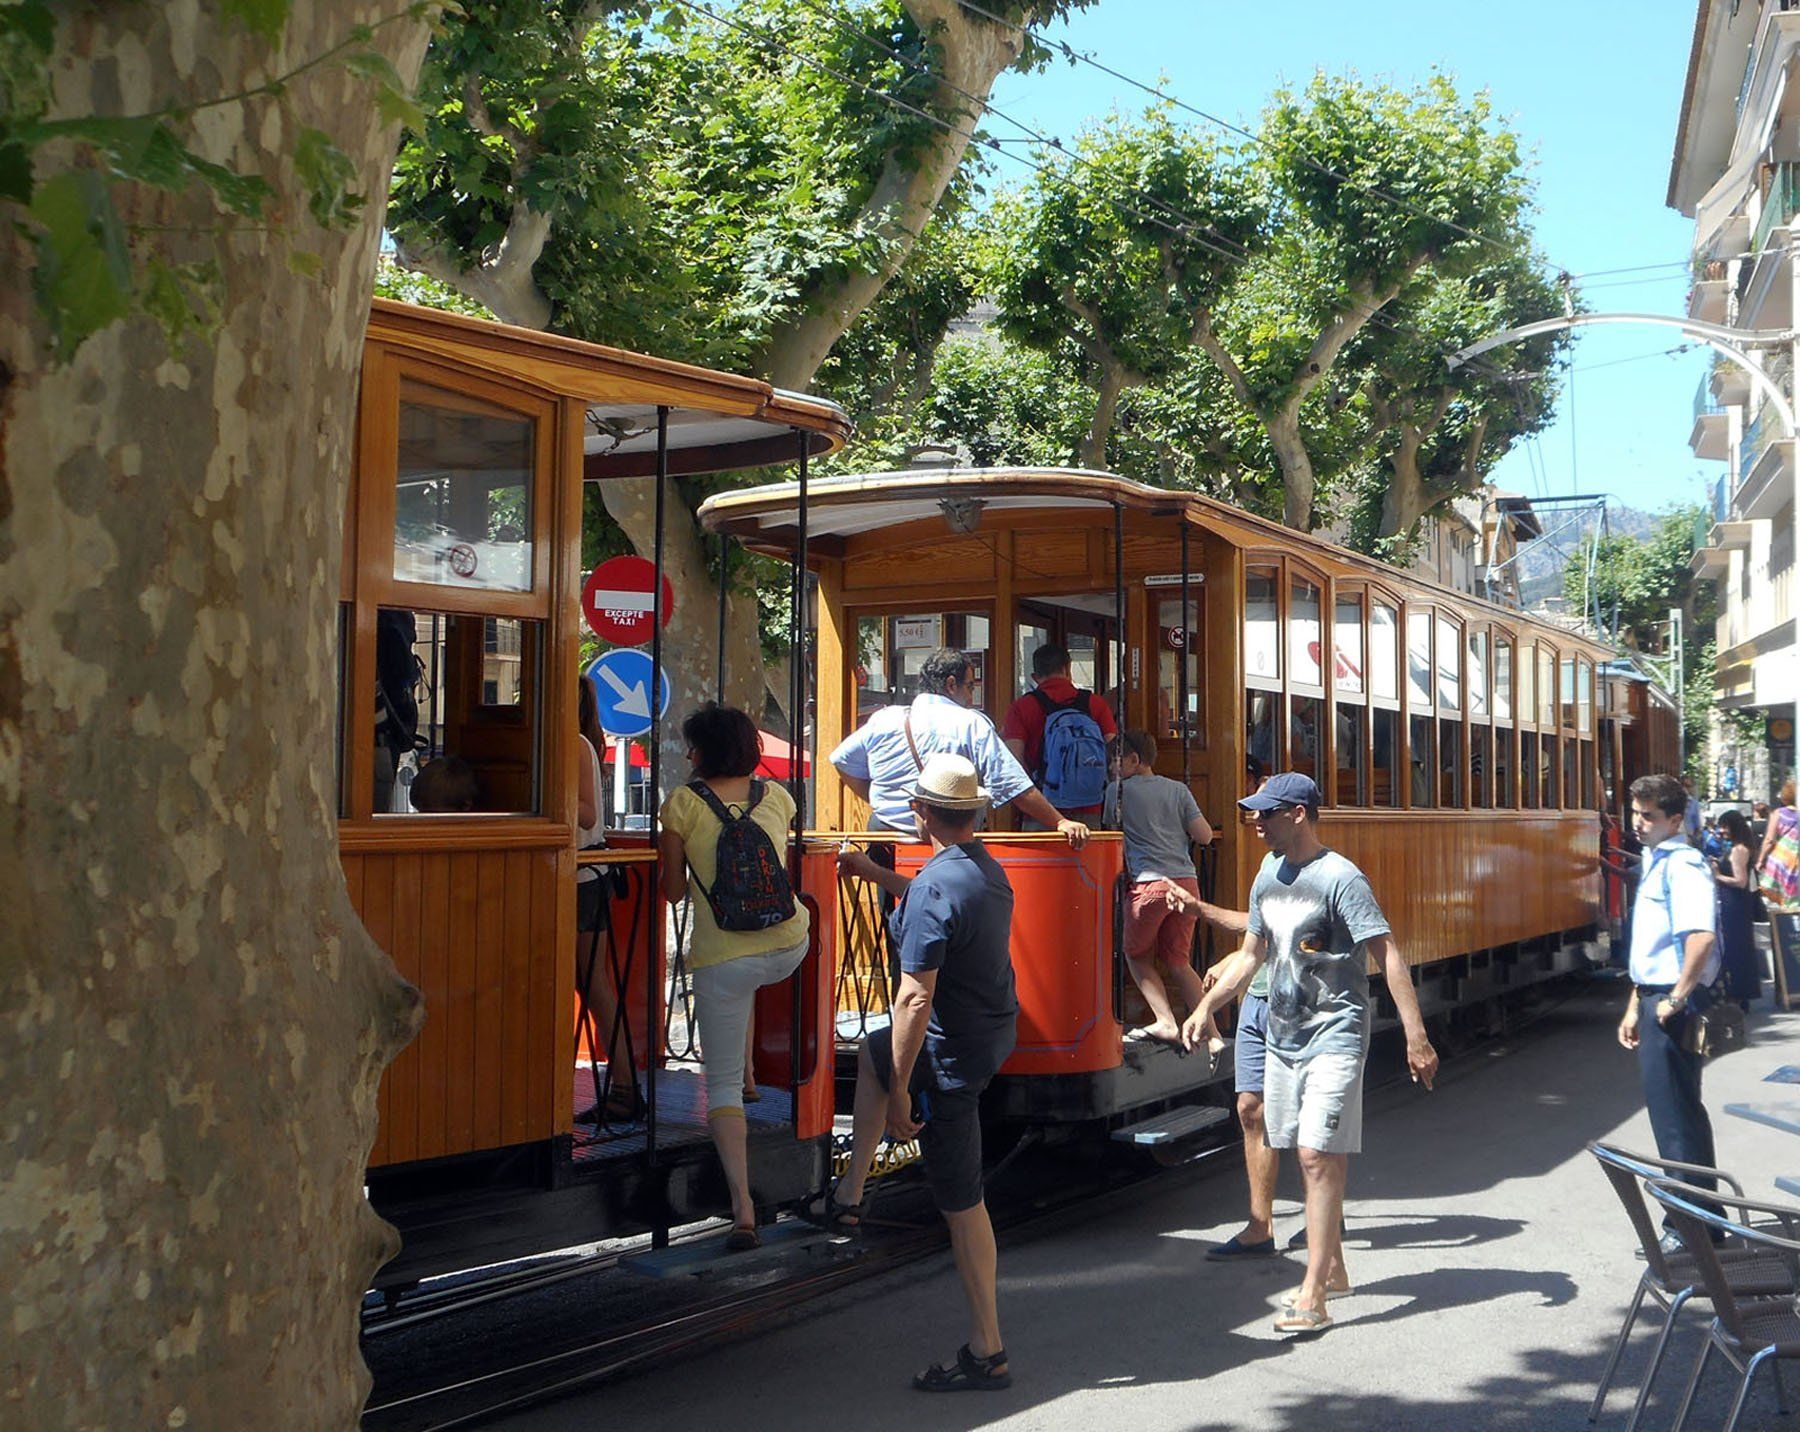 The Soller railway connects the town of Soller to Palma de Mallorca and Port de Soller. Craigslegz.com